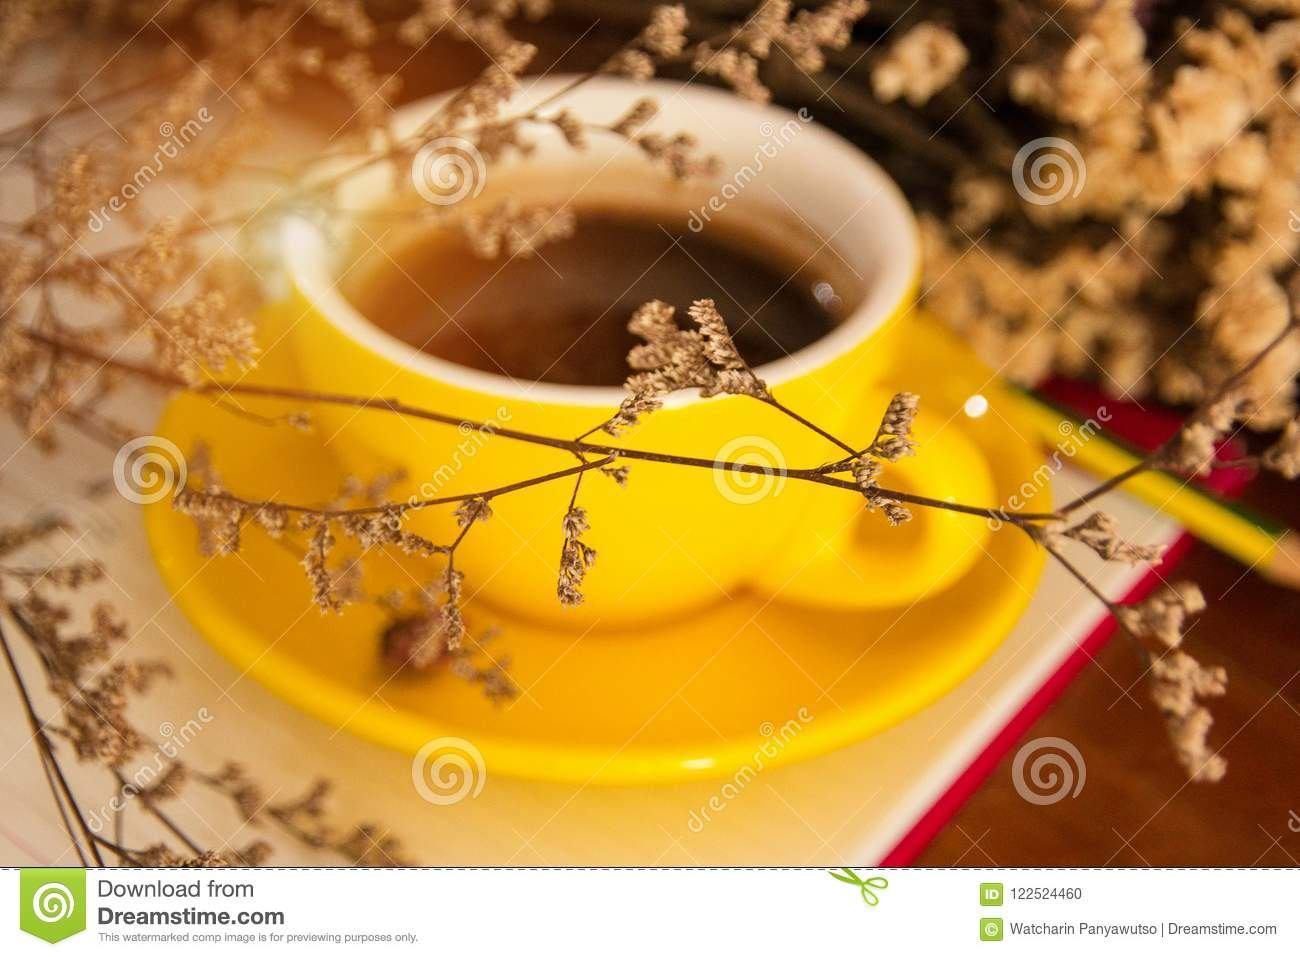 The blurry light design background of yellow ceramic coffee cup put at the back of dried flower,vintage and art style